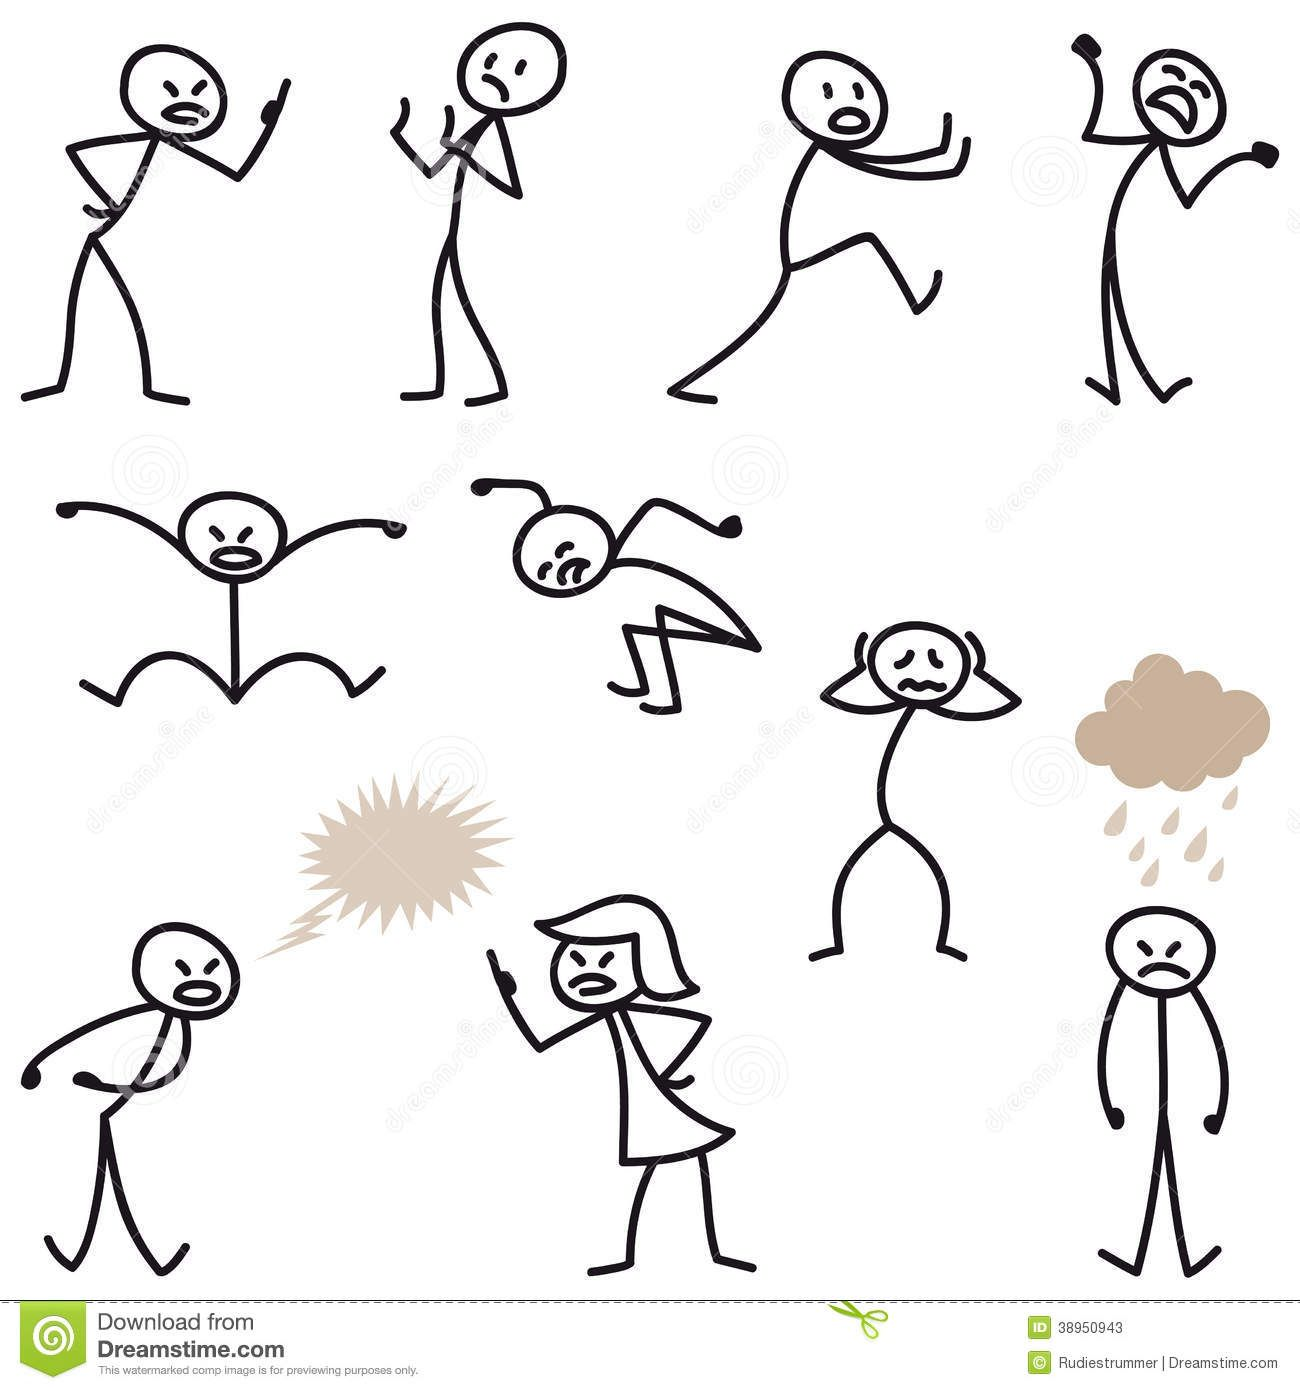 Stick Man Stick Figures Angry Bad.